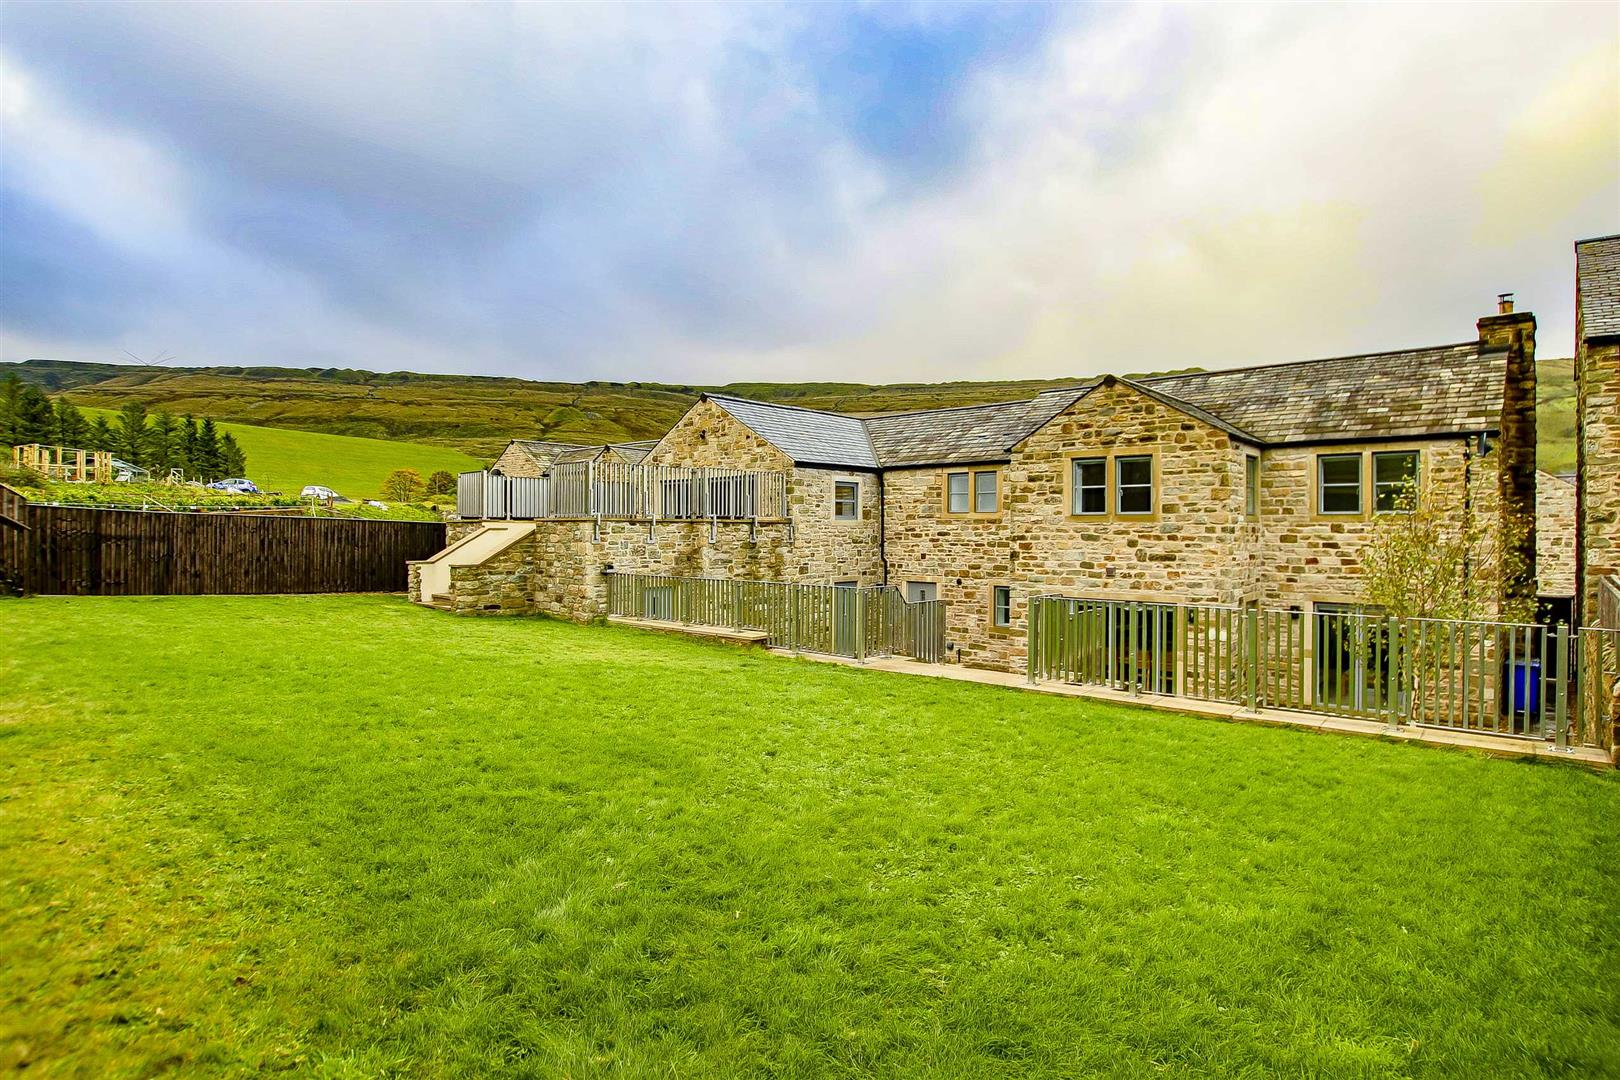 7 Bedroom Detached House For Sale - Image 44